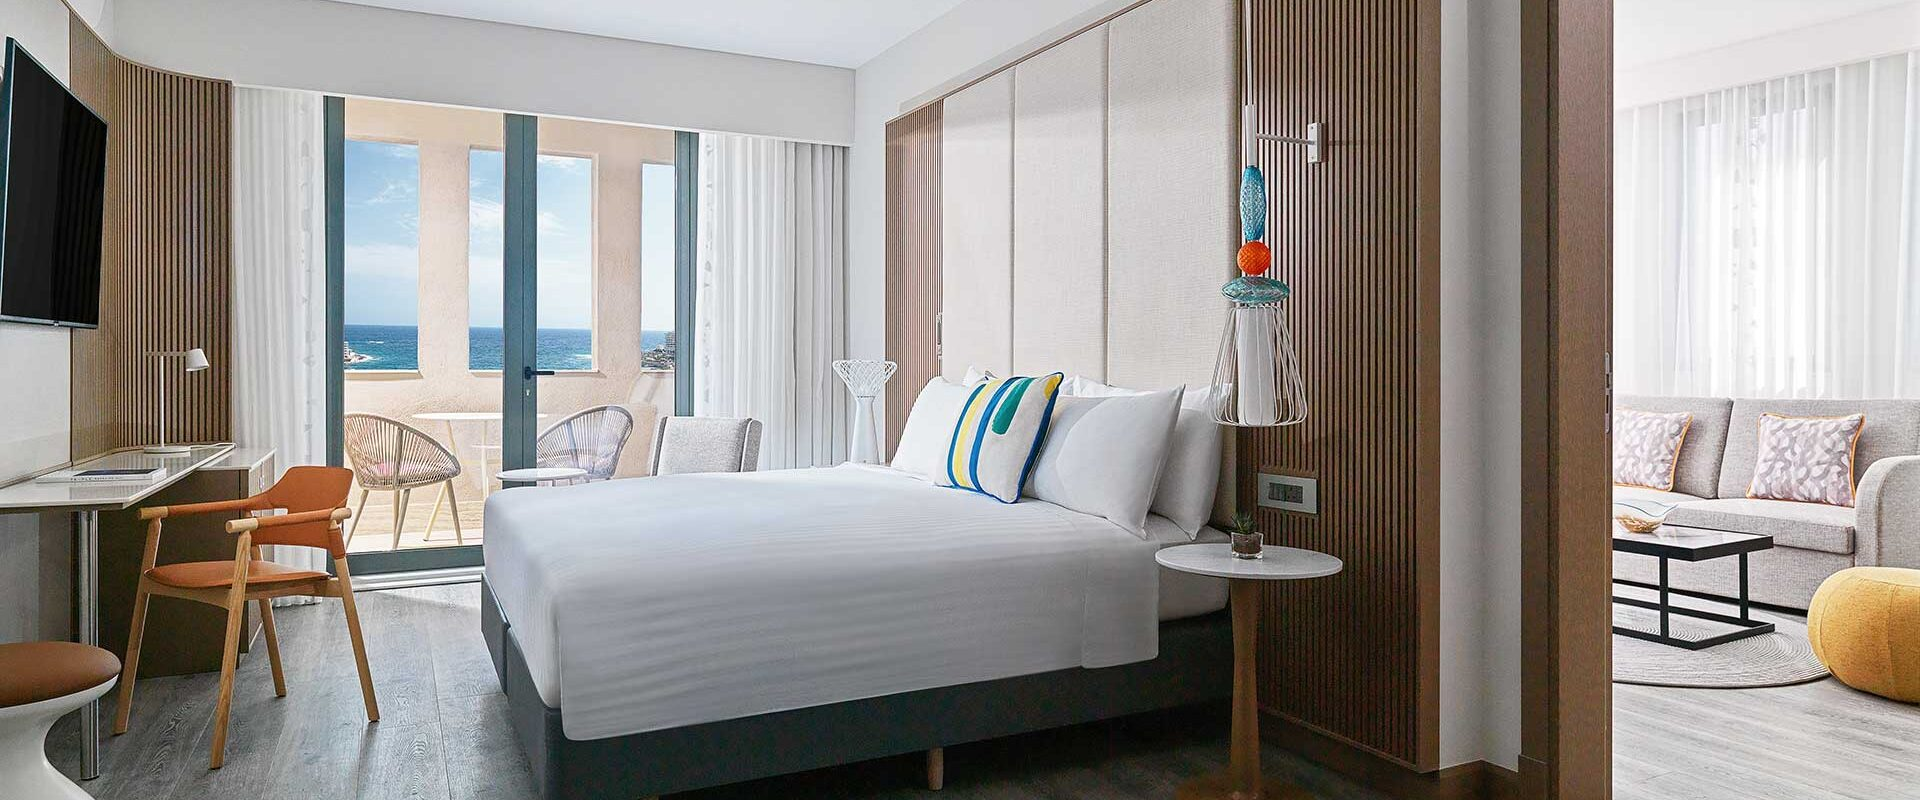 the spacious bedroom of a luxury hotel suite with bed doors leading to a balcony with sitting area overlooking the sea